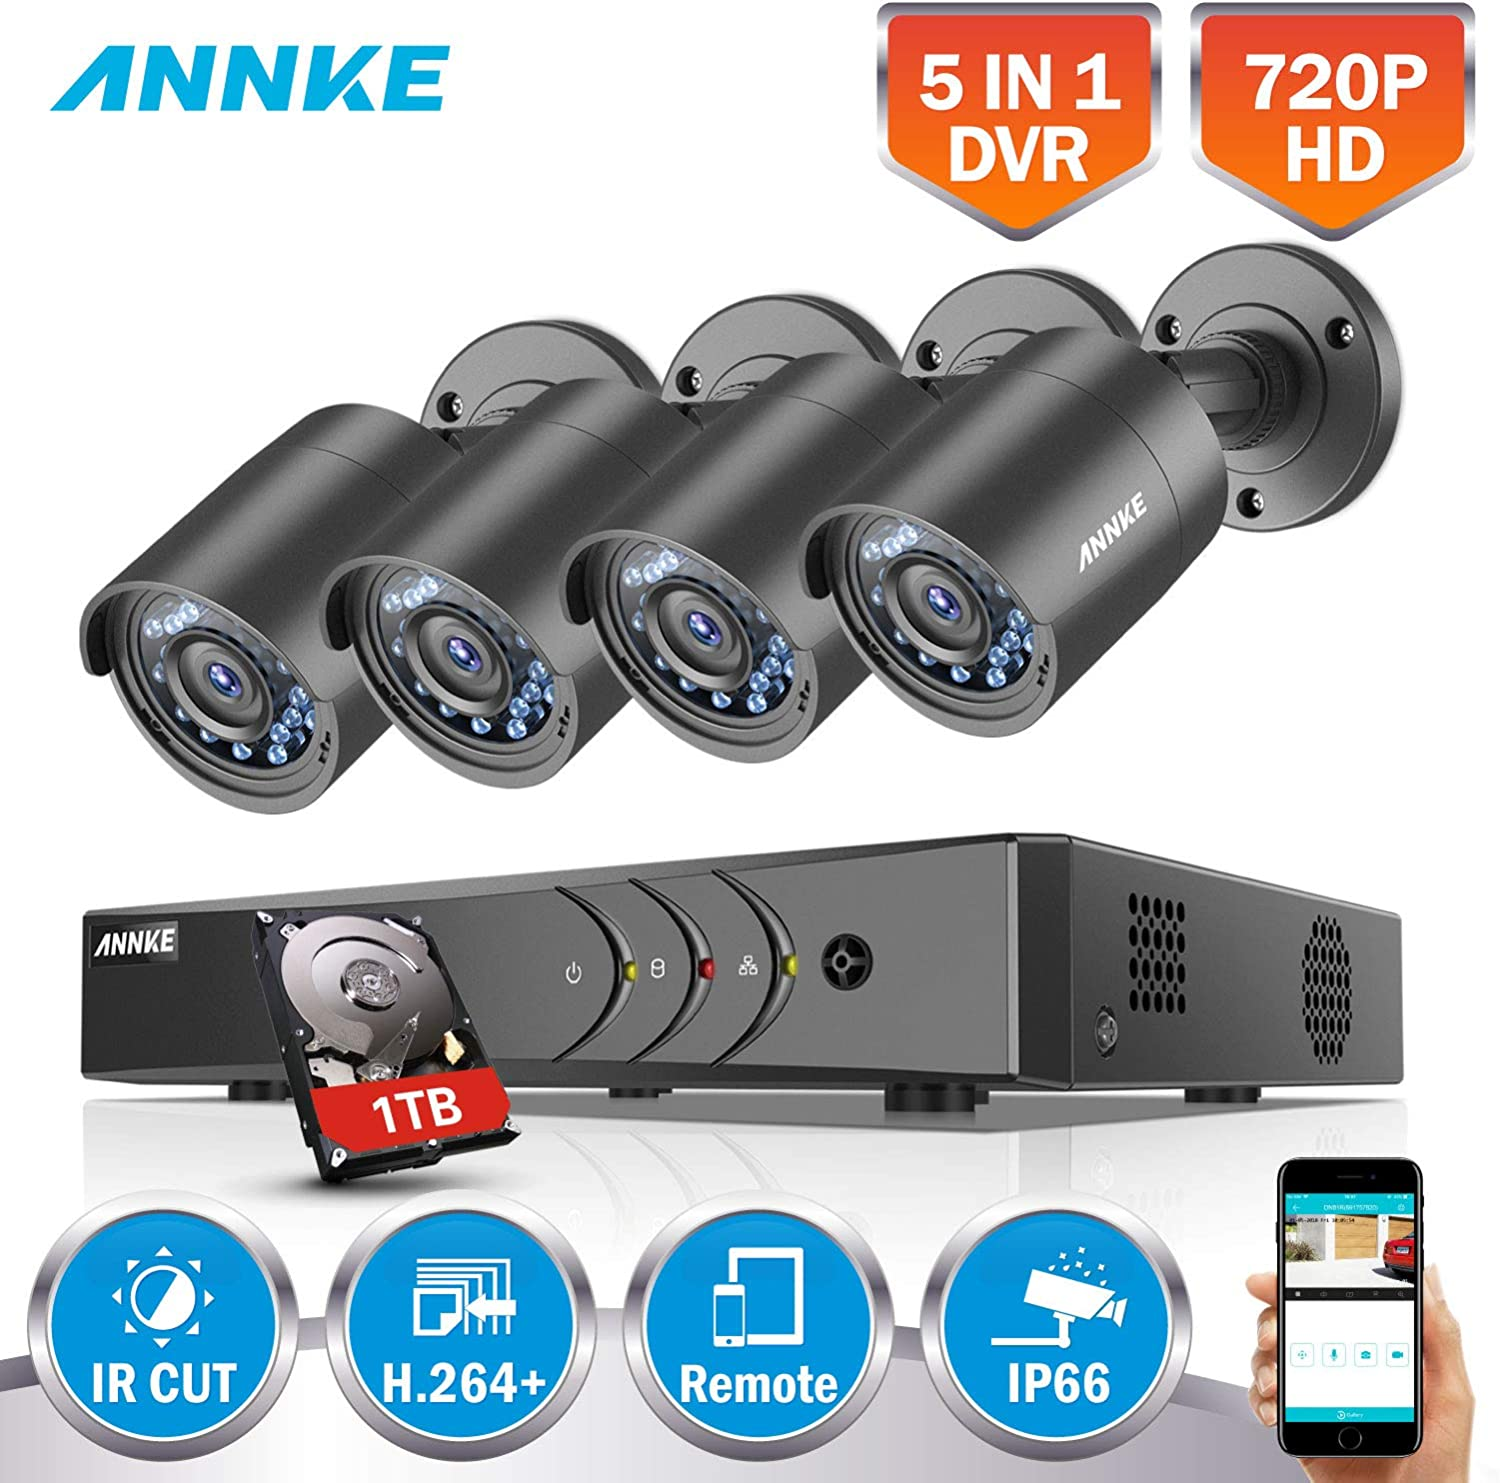 Motion Detect Smart Recording USB Backup ANNKE CCTV Camera System 8+2CH 1080P Lite HD TVI 5-IN-1 DVR Kit w// 1TB Surveillance HDD and 4x 1080P Weatherproof Bullet Cameras